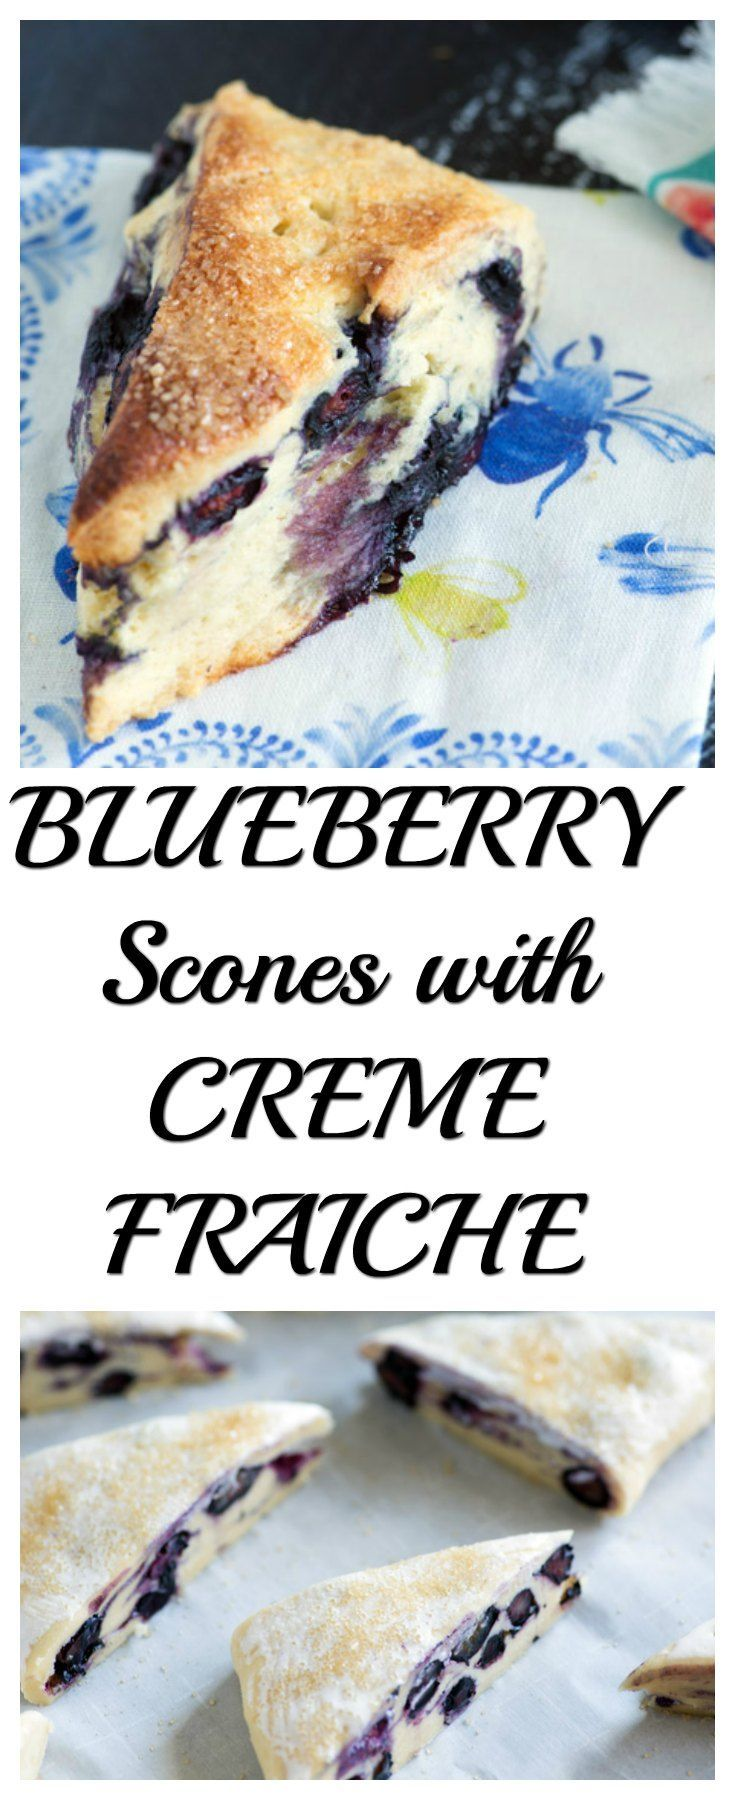 Blueberry scones made with creme fraiche are amazing for breakfast or tea. The pastry is heavenly and not too sweet. With this tried and true technique yours will turn out perfect every time. |butterandbaggage.com #recipe #breakfast #scone